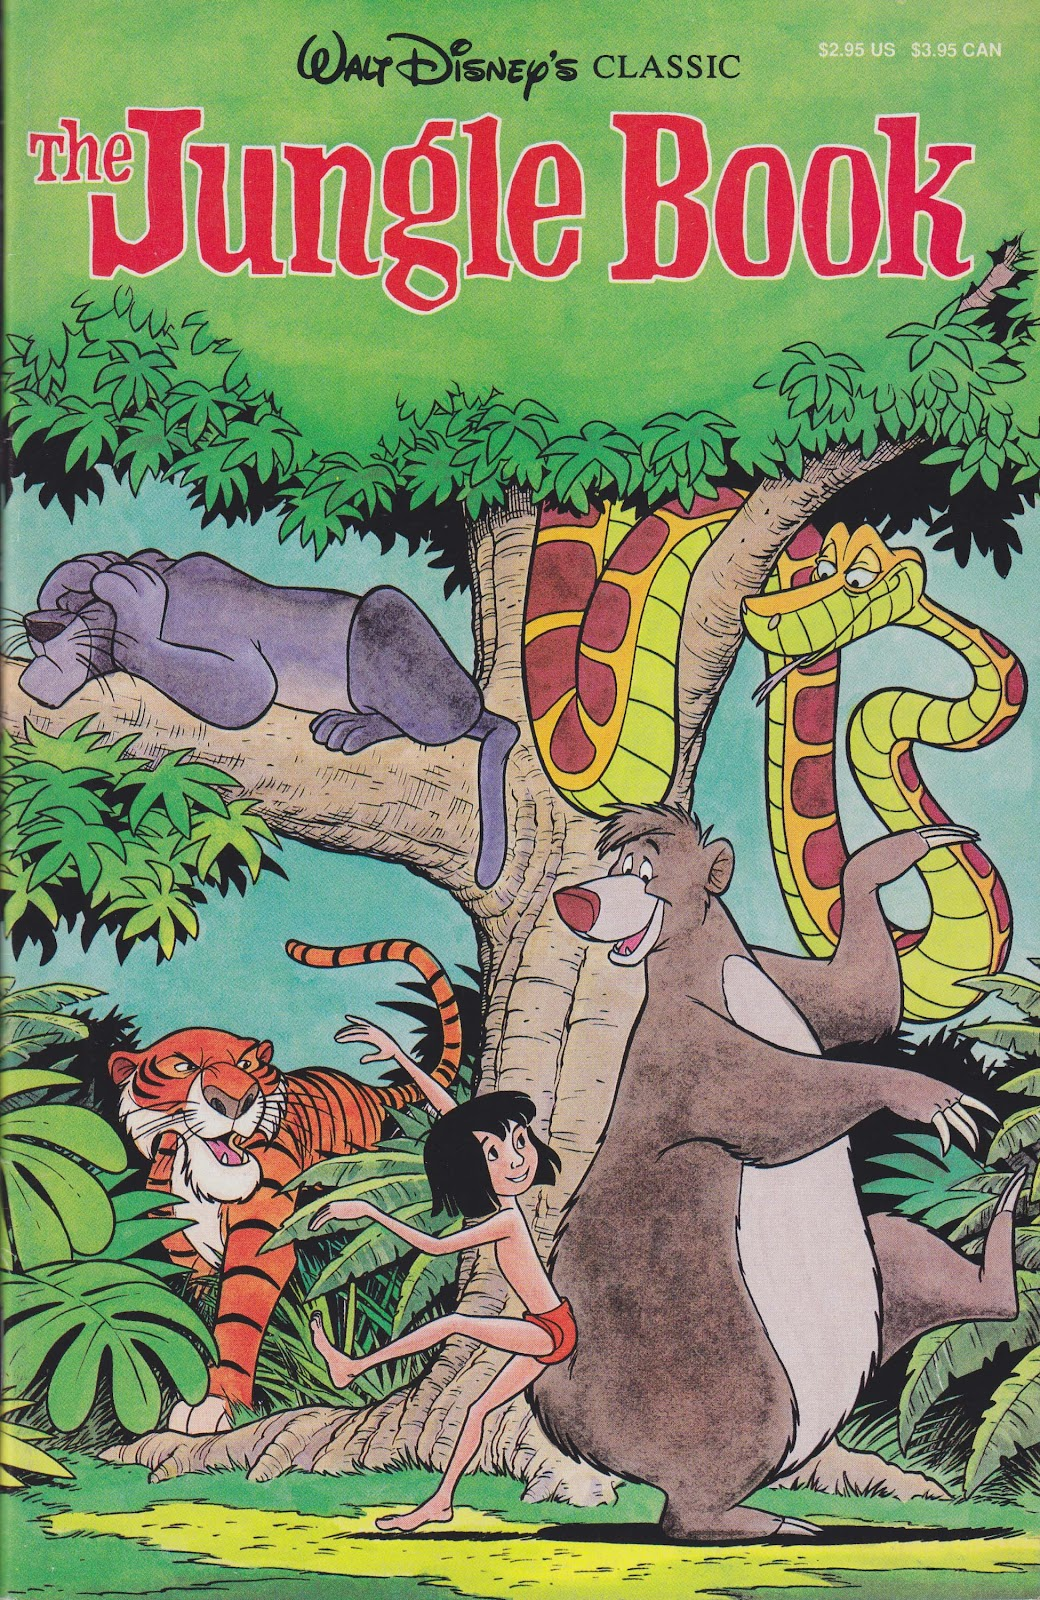 Read online The Jungle Book comic -  Issue # Full - 1